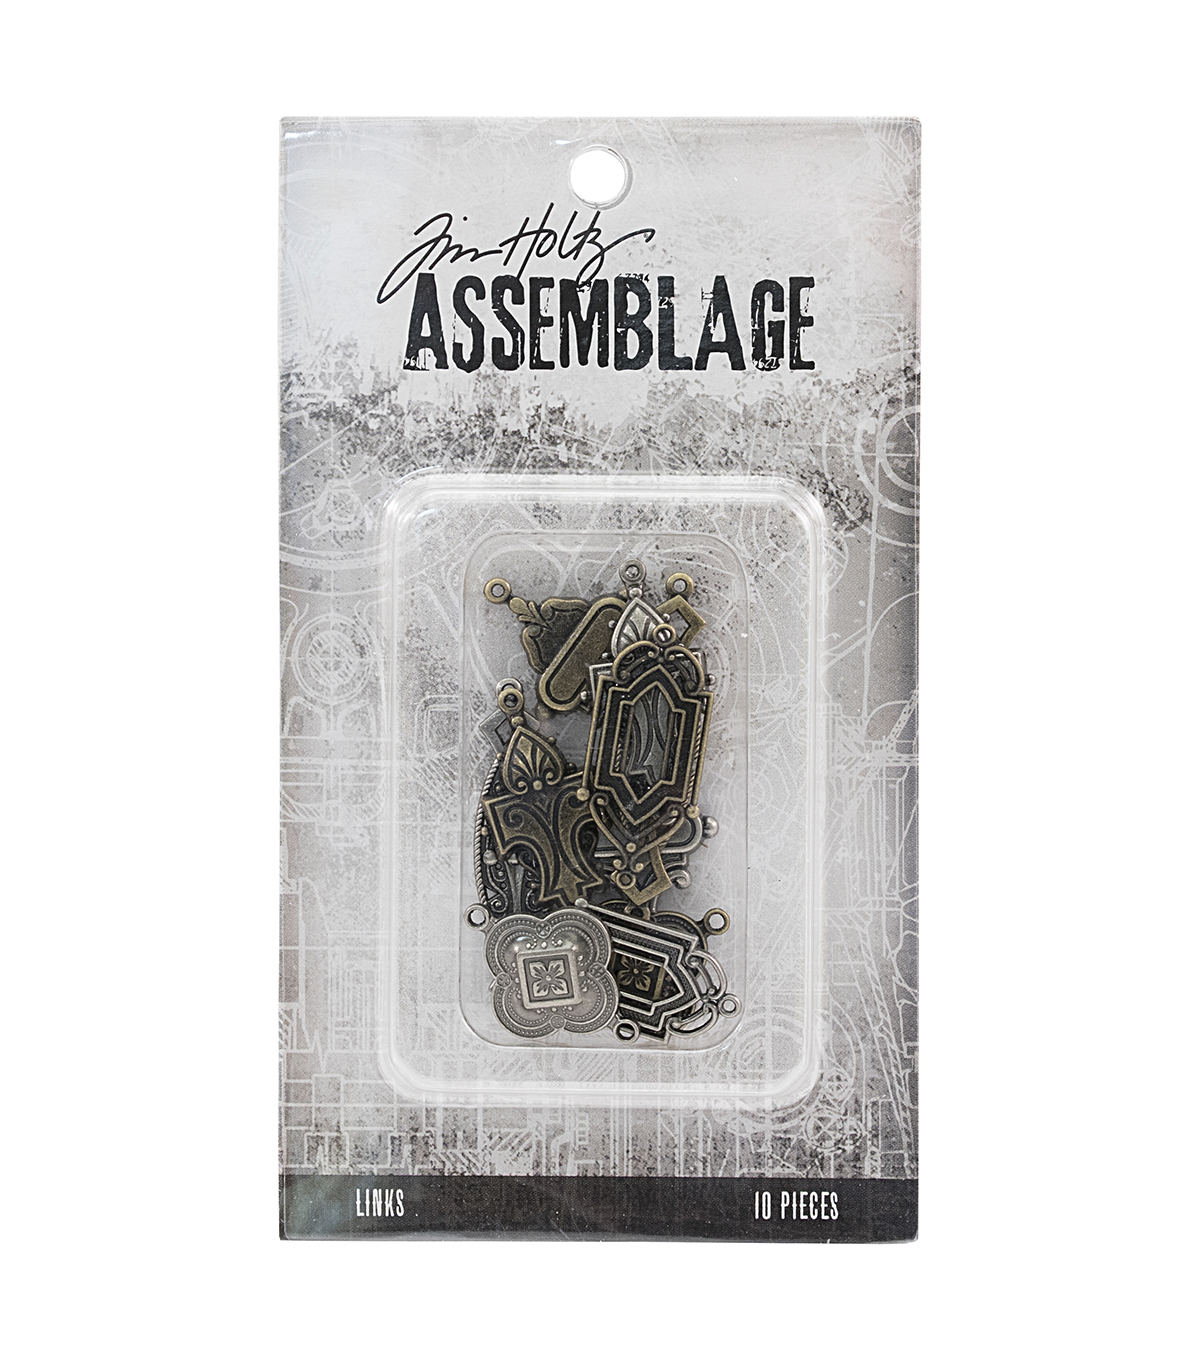 Tim Holtz Assemblage 10 Pack Art Deco Antique Silver & Brass Links